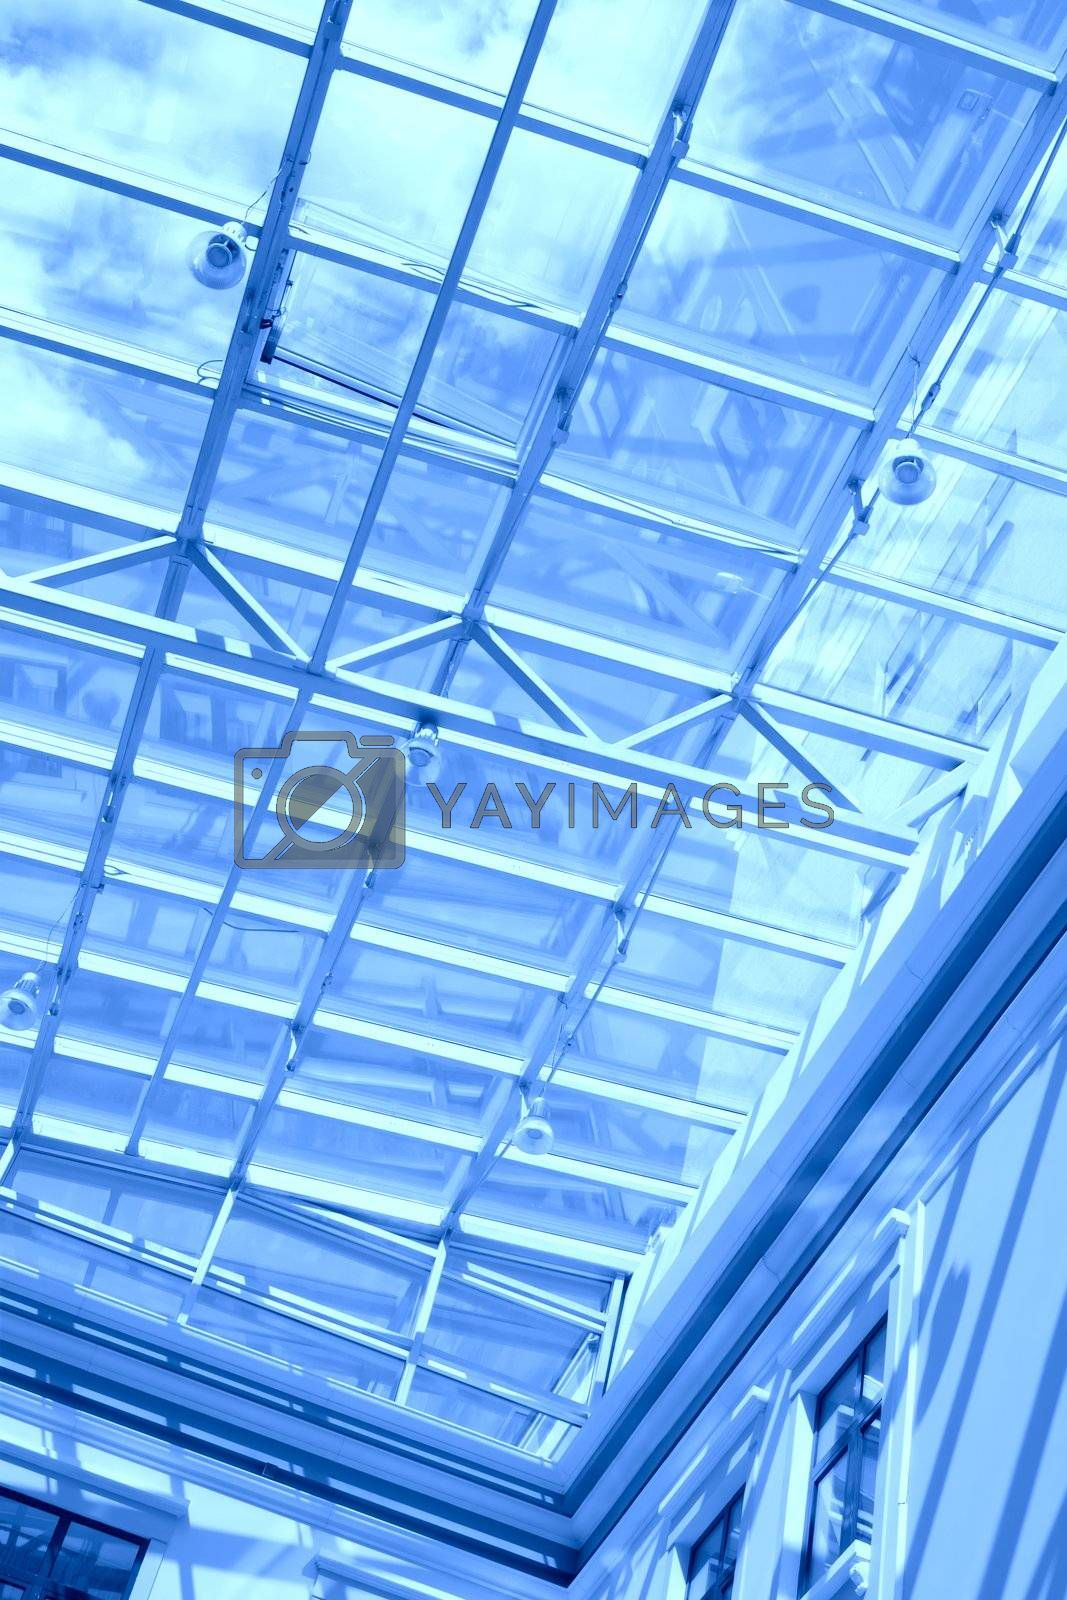 Royalty free image of blue transparent ceiling by Astroid